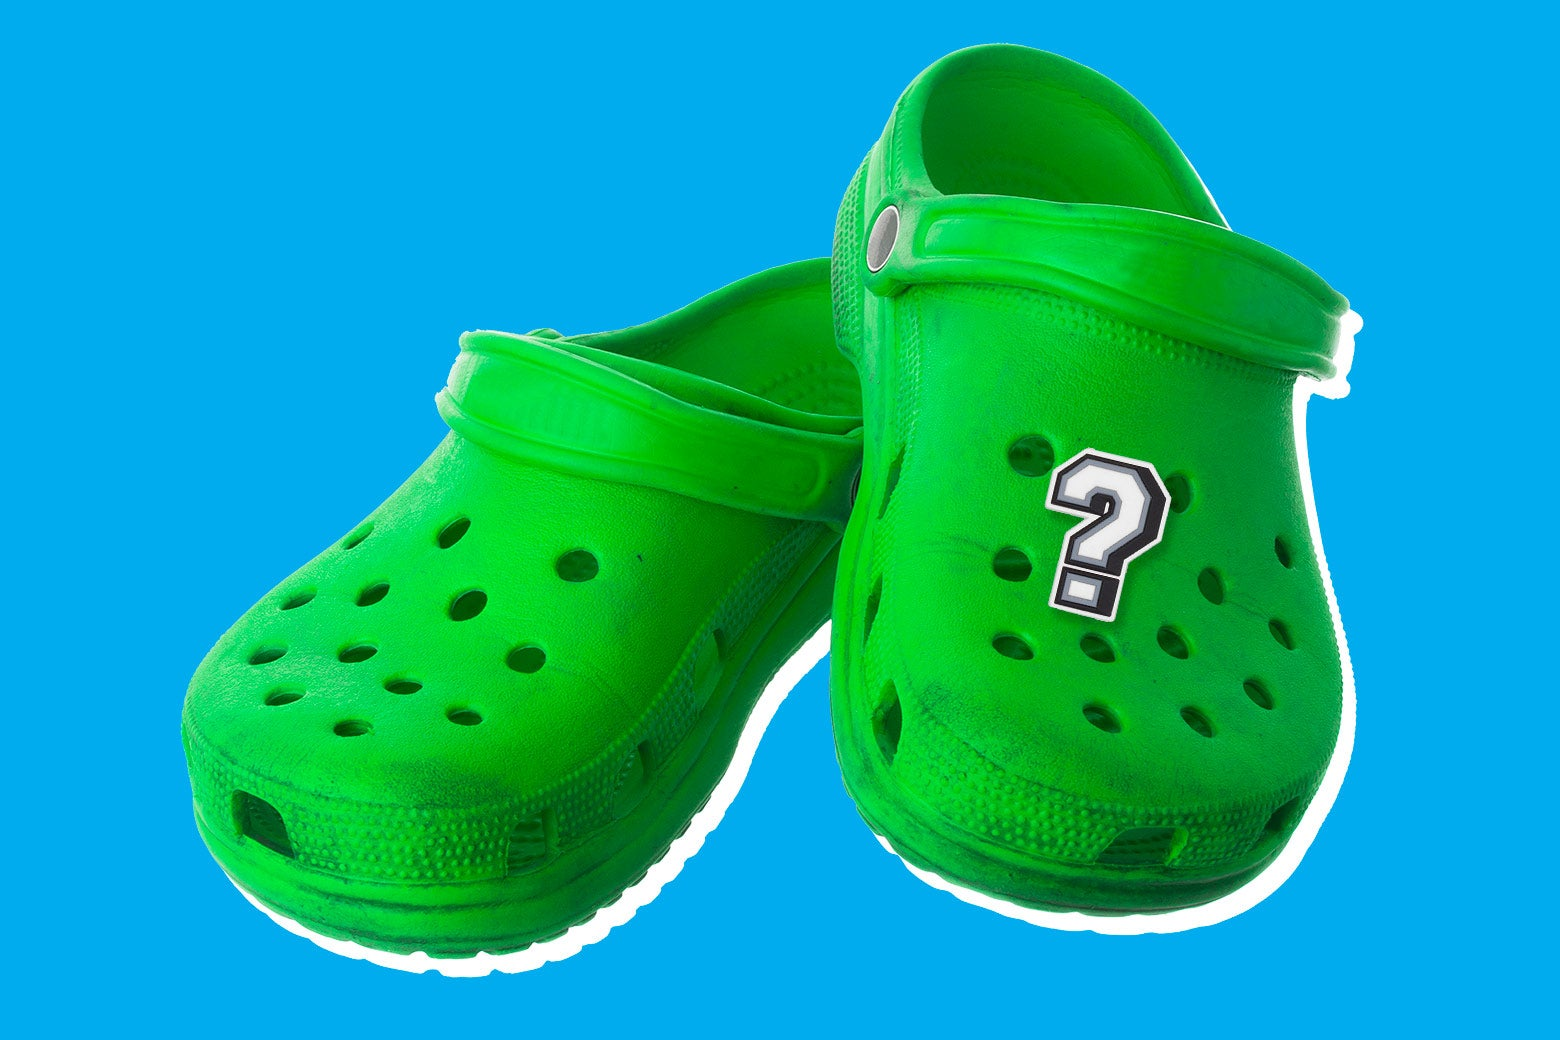 A pair of green Croc clogs with a question-mark button.